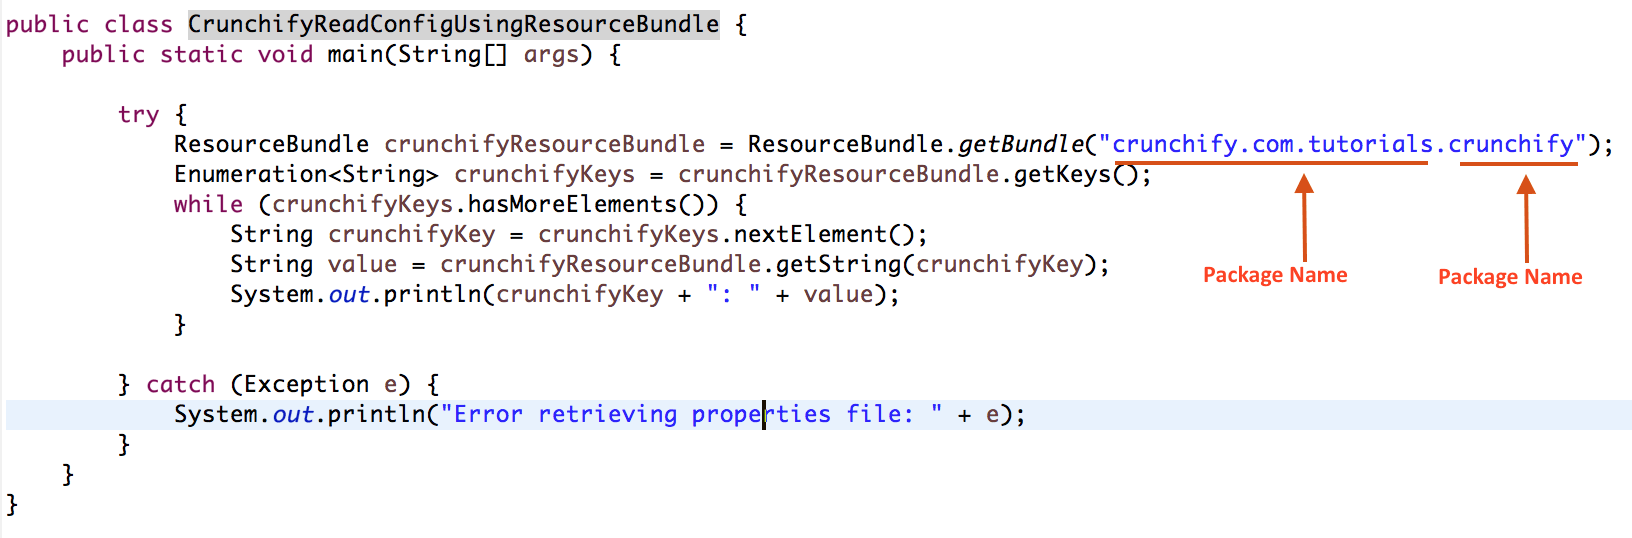 Crunchify ResourceBundle - load properties file Tutorial